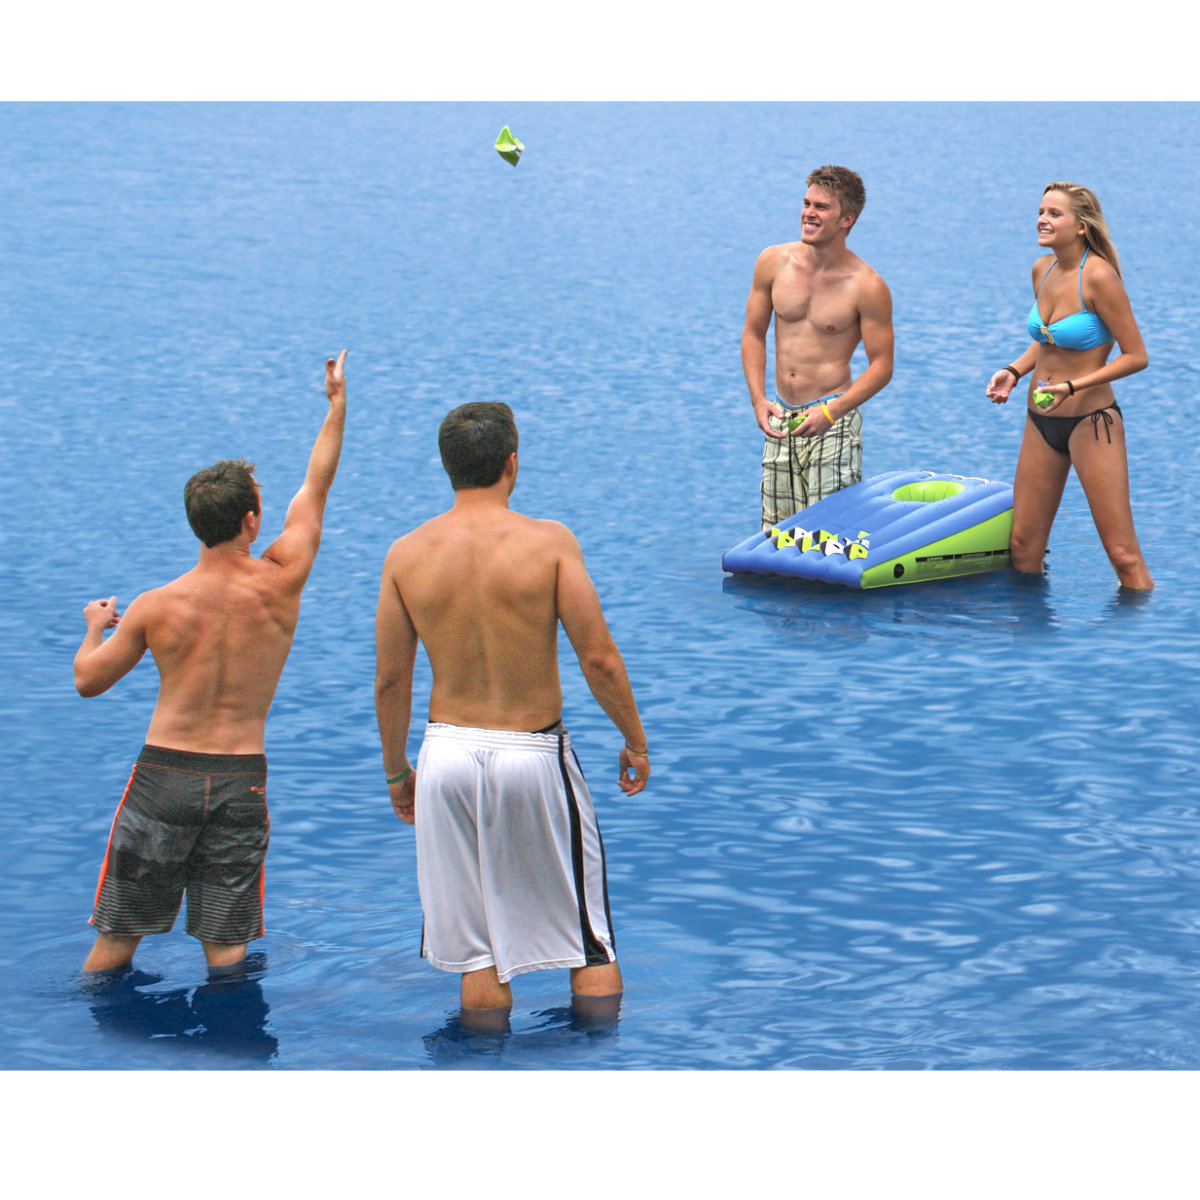 Airhead Blast Water Tube Tow Harness Lob The Blob Inflatable Corn Hole Game